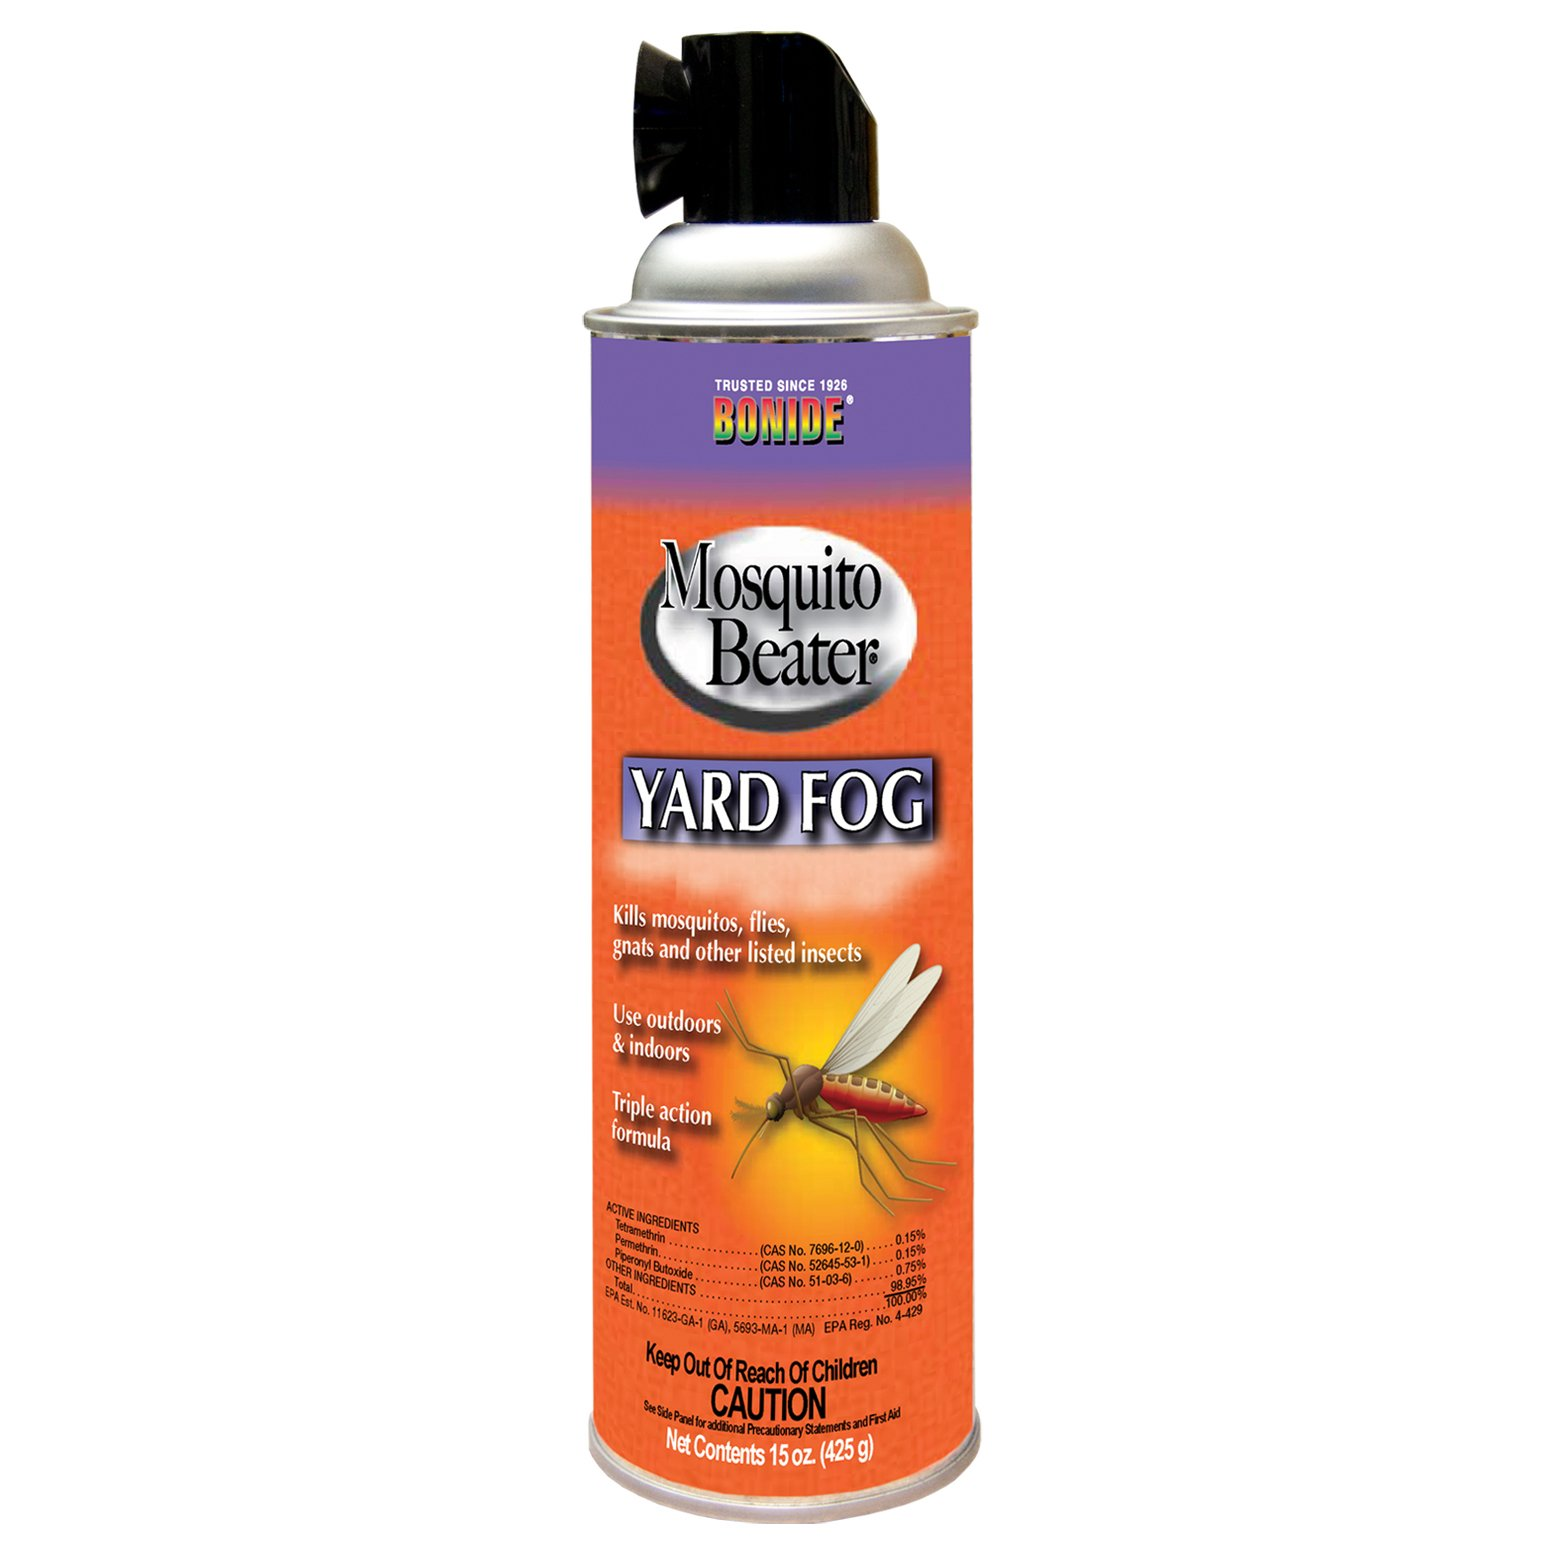 Bonide Chemicale Mosquito Beater Yard Fog, 15-Ounce